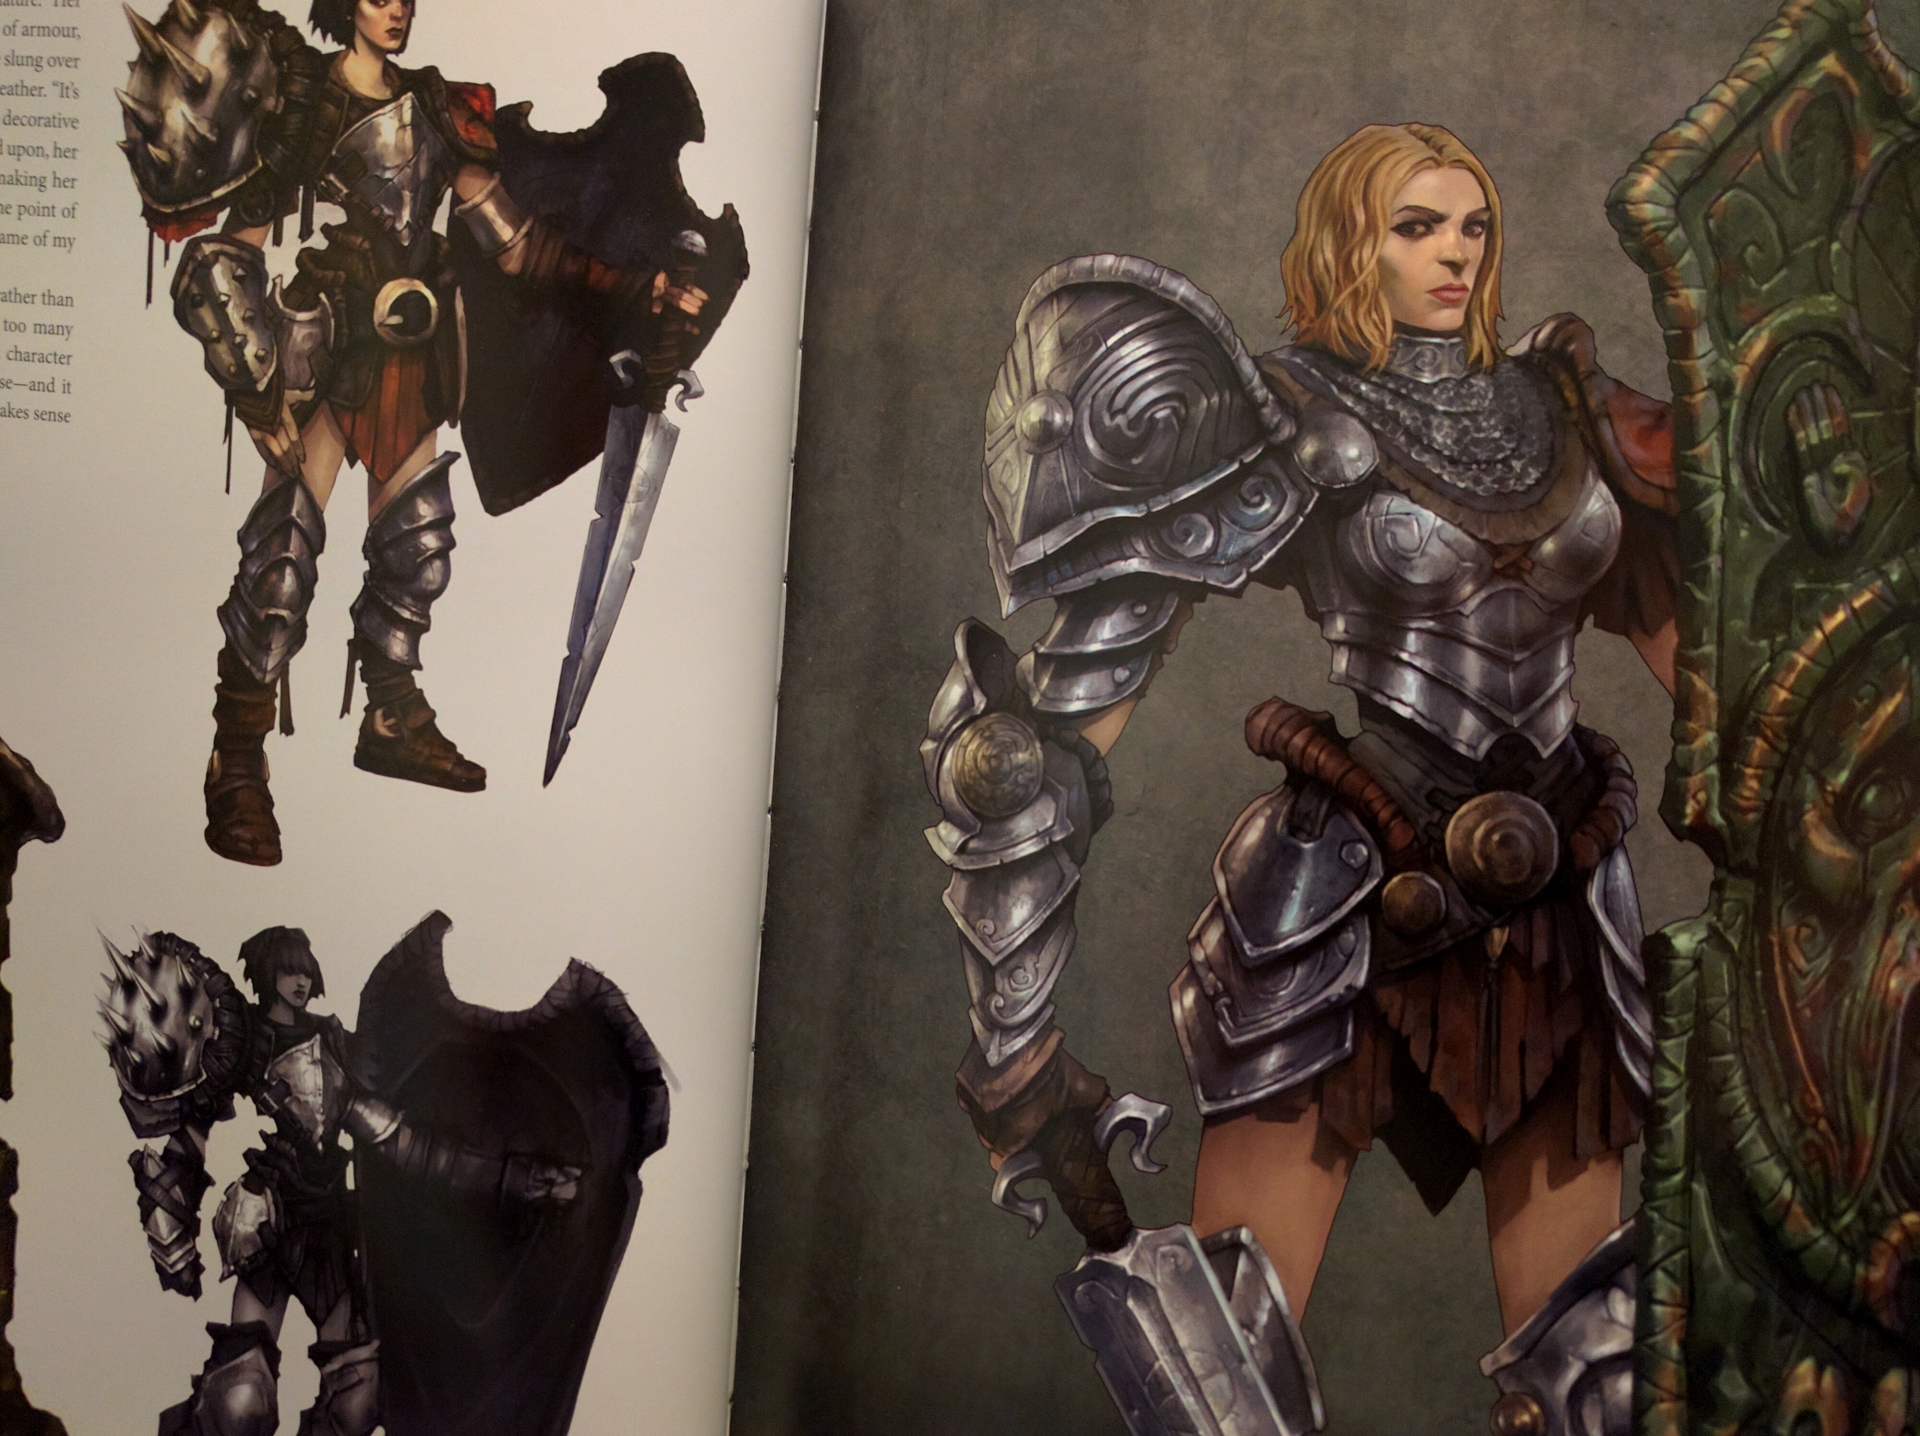 Options or iterations these are your characters to make.  sc 1 st  Gaming Trend & The Art of Fable Legends \u2014 We knock on a new Demon Door \u2013 GAMING TREND